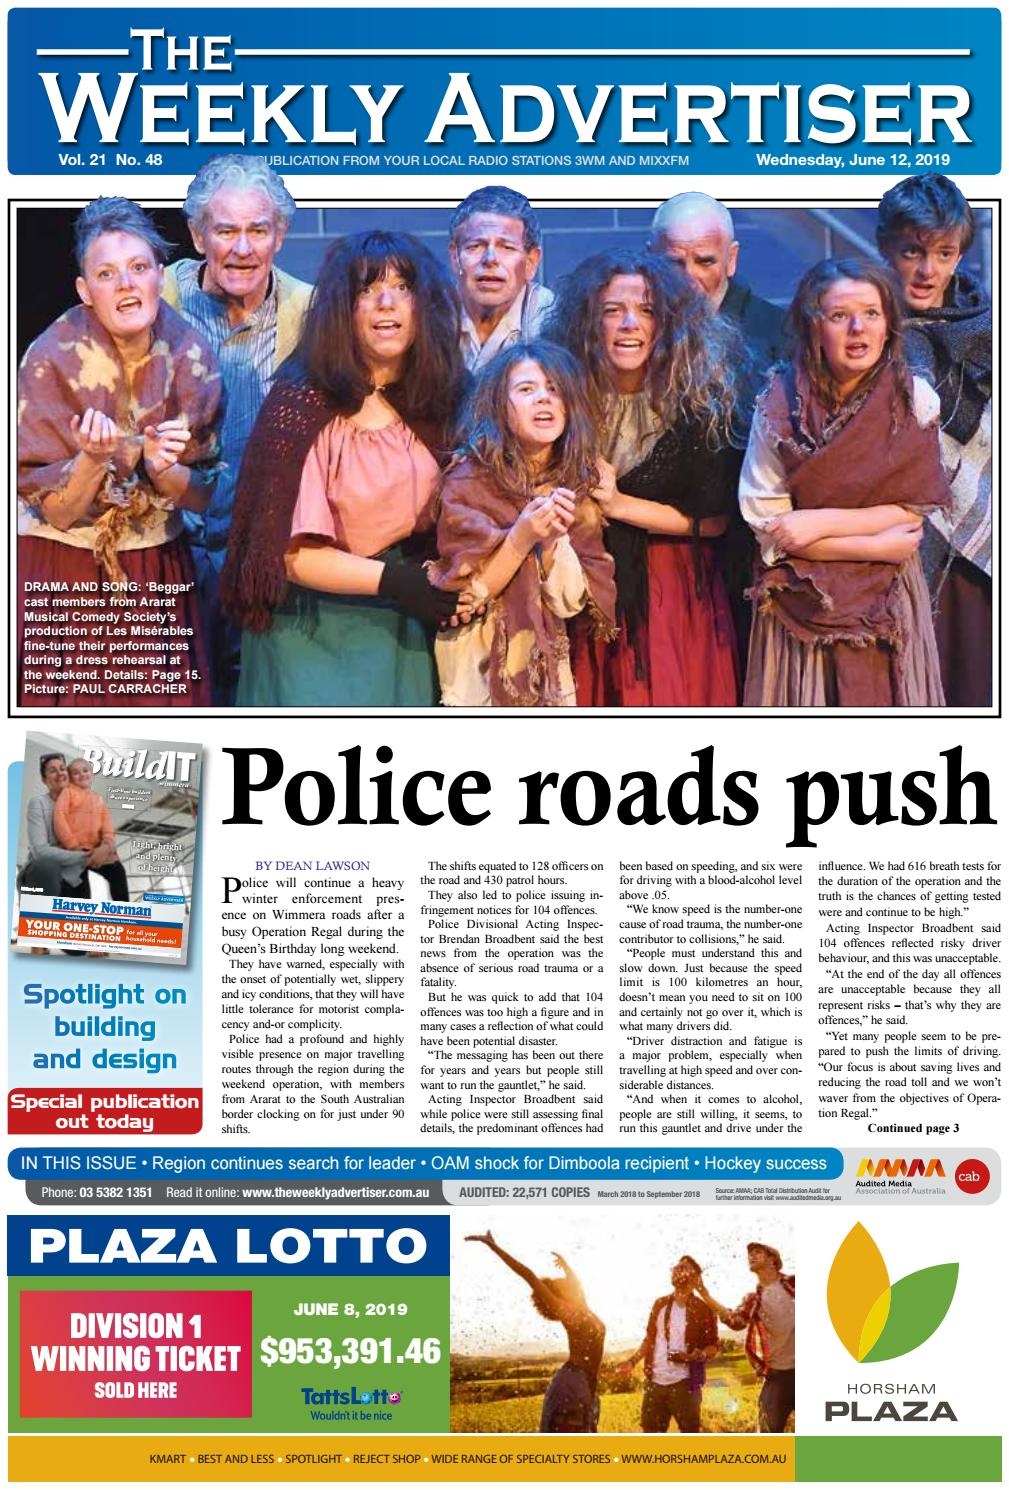 The Weekly Advertiser - Wednesday, June 12, 2019 by The